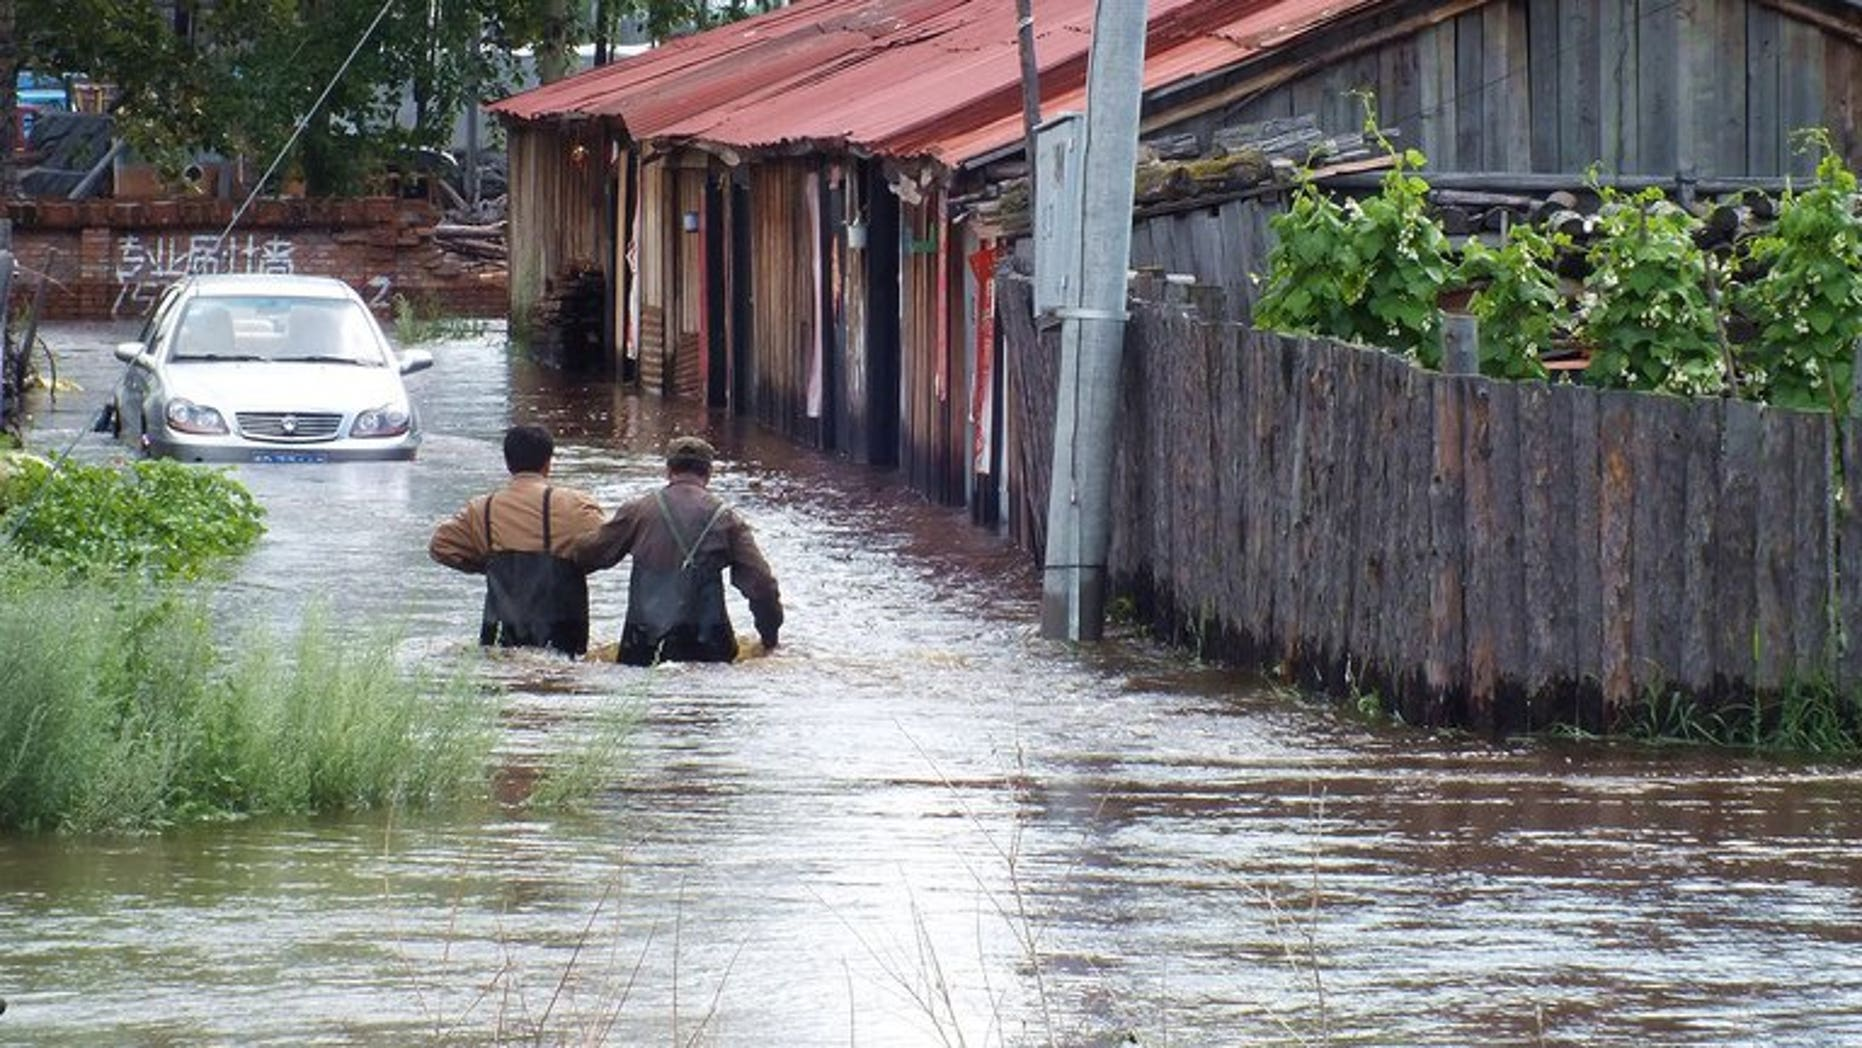 This picture taken on July 25, 2013 shows local residents wading in a flooded area in Yakeshi, in northern China's Inner Mongolia region. Twenty-five people have been killed by floods which hit northeastern China over the past week, state media said Saturday, as other parts of the country continued to experience a heatwave.